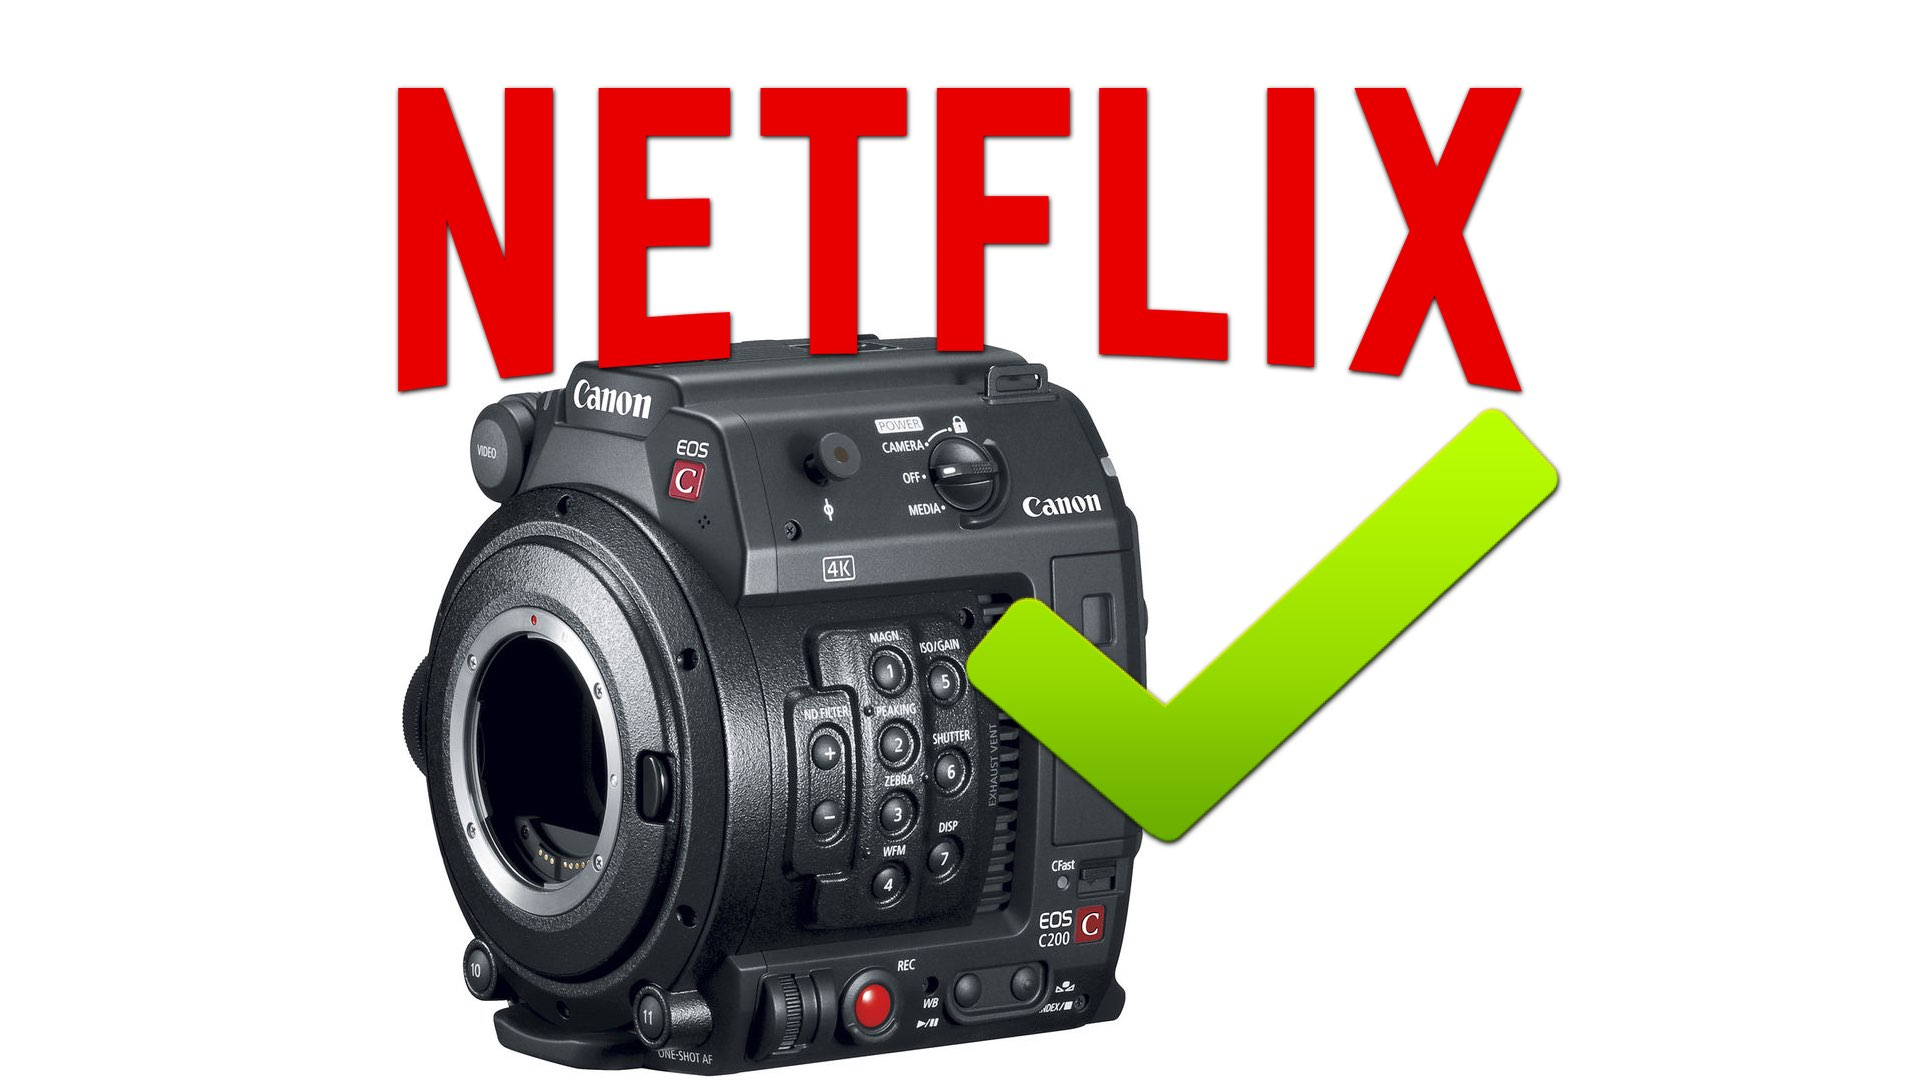 The Canon C200 can be Used on Netflix Productions (Under